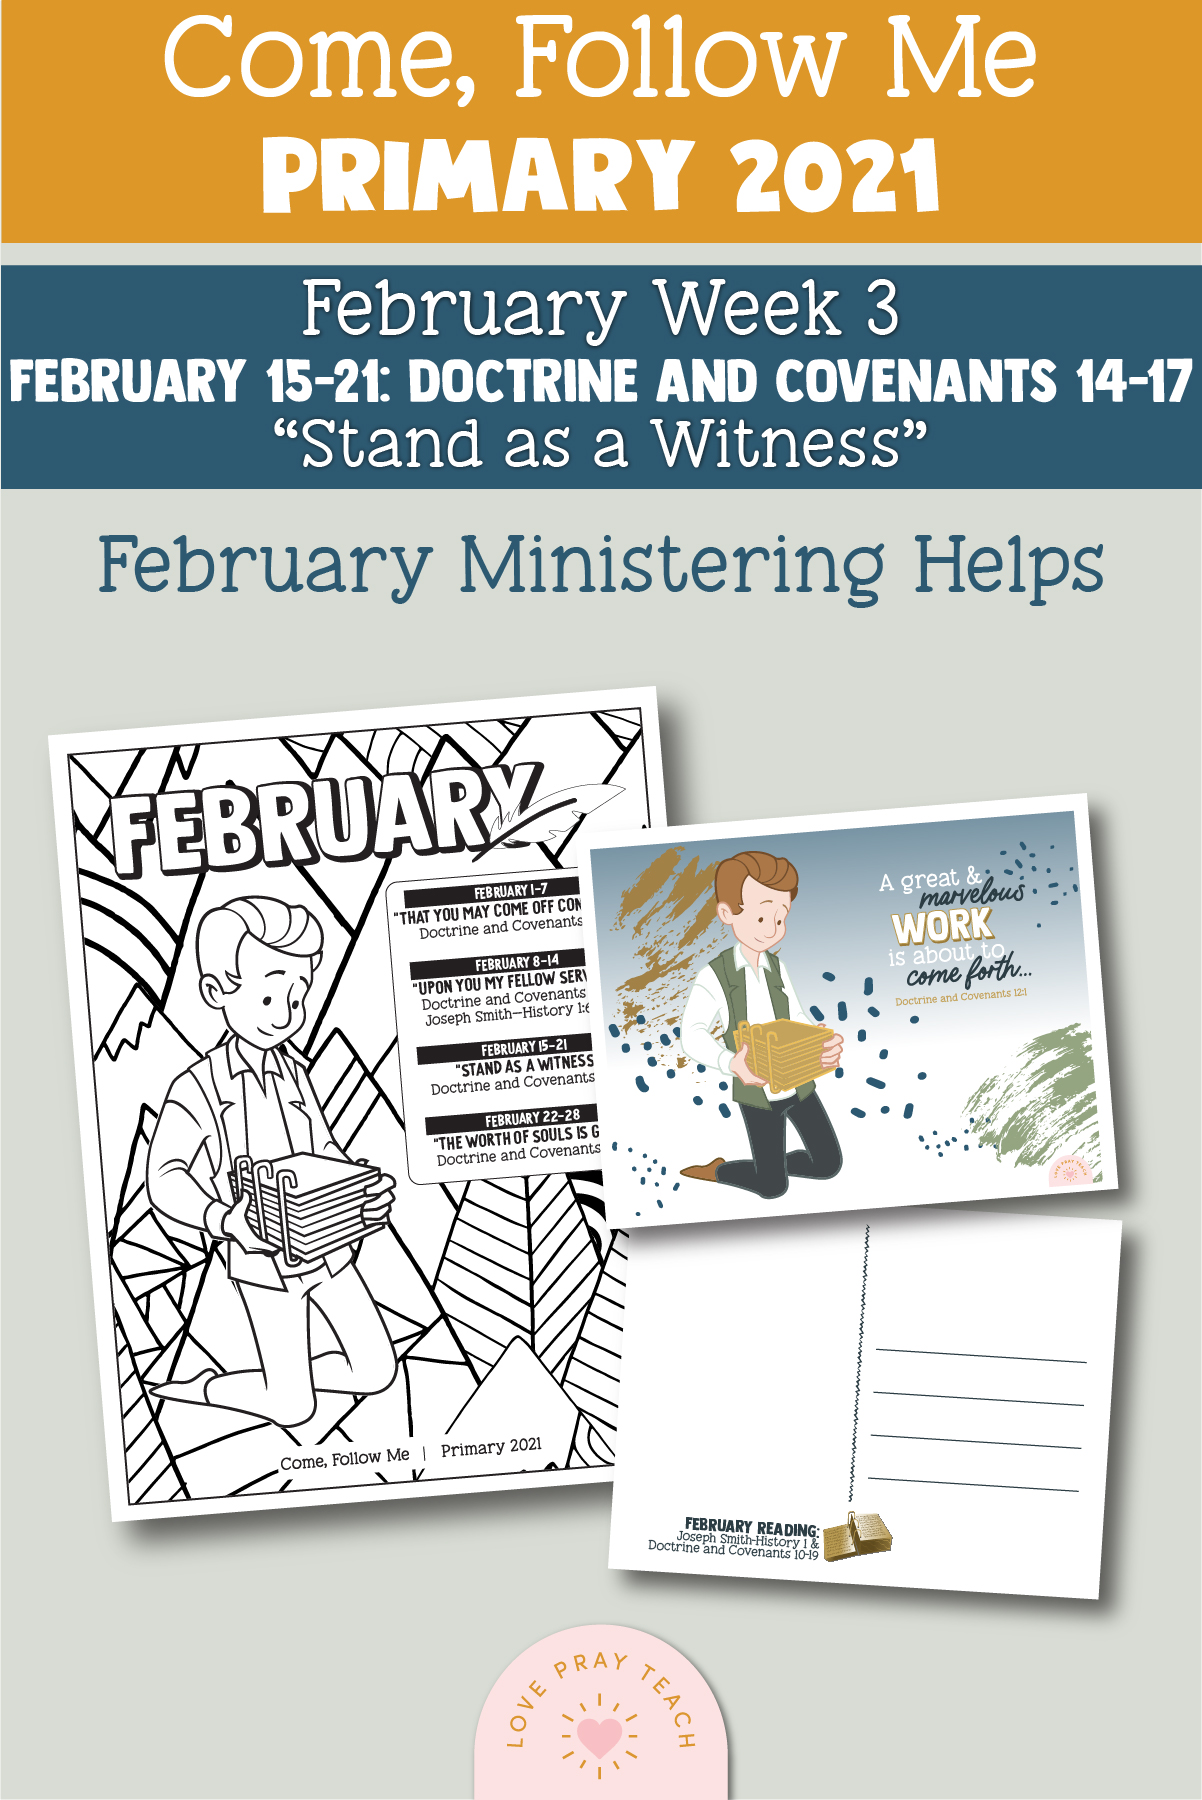 """Come, Follow Me for Primary 2021 February 15-21 Doctrine and Covenants 14–17 """"Stand as a Witness"""" Printable Lesson Materials"""